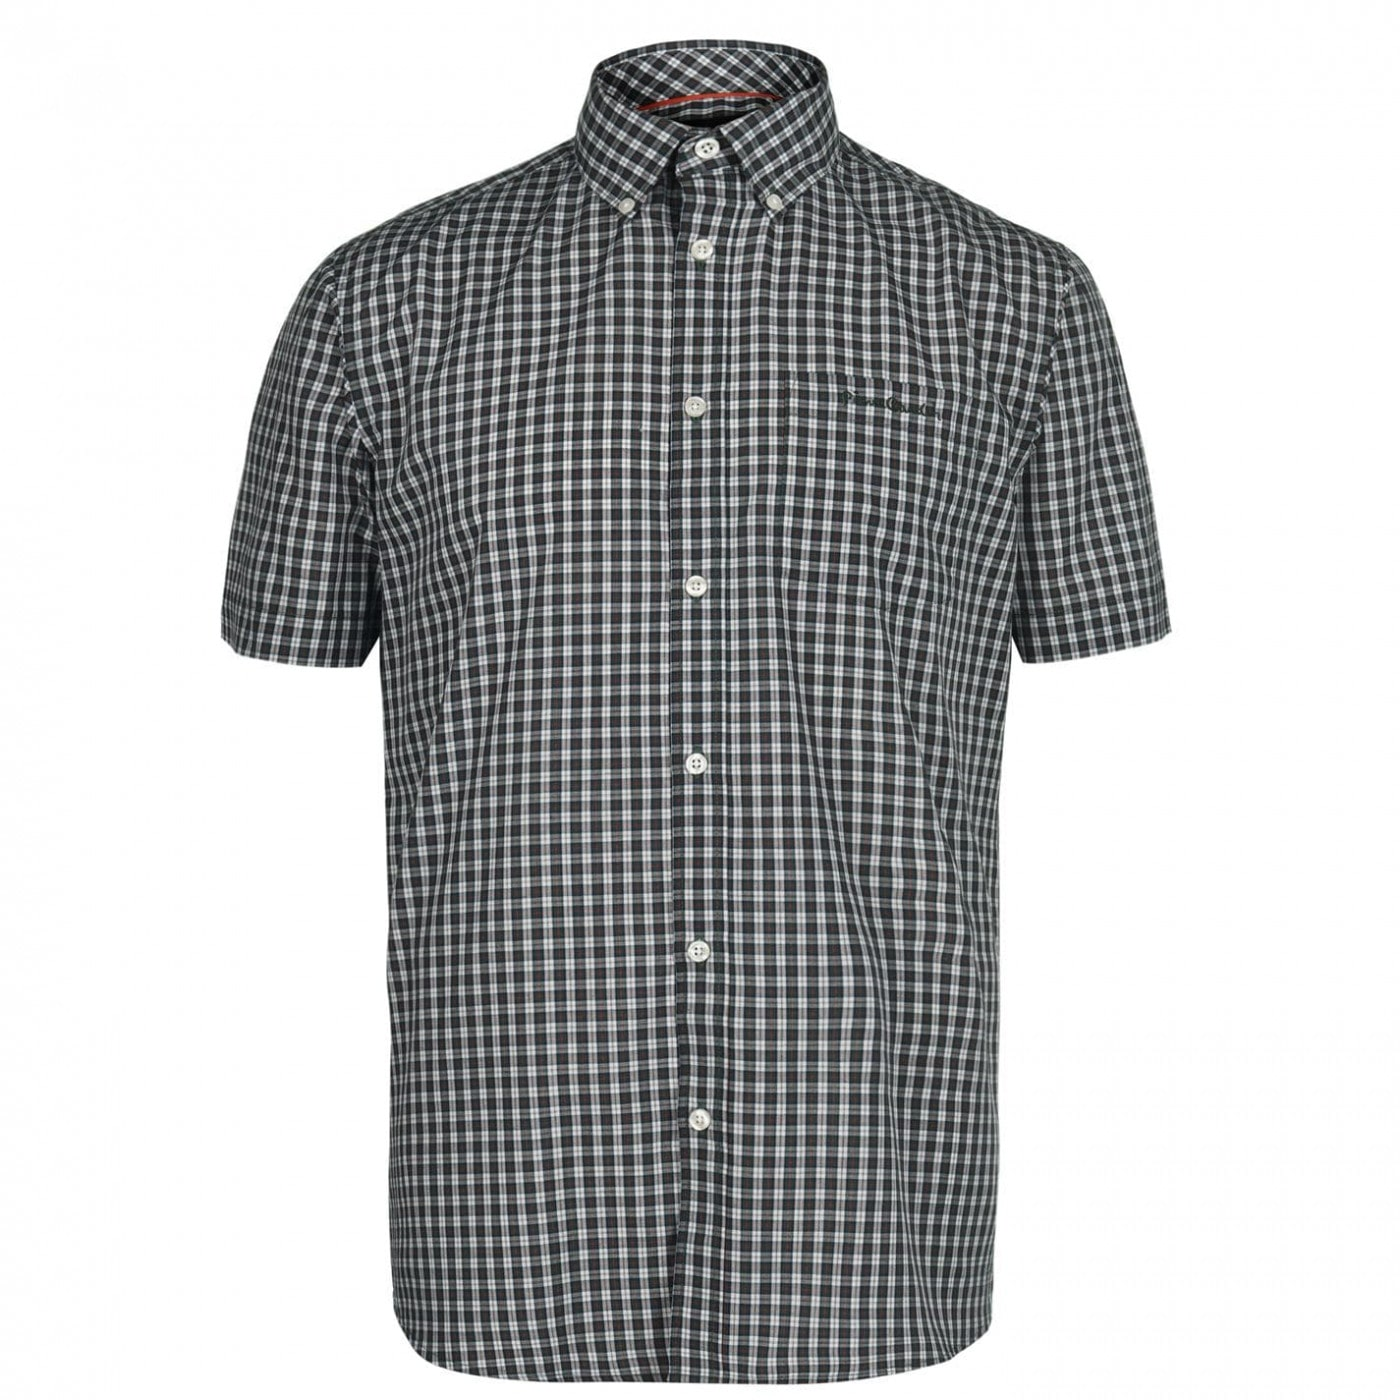 Pierre Cardin Short Sleeve Micro Check Shirt Mens